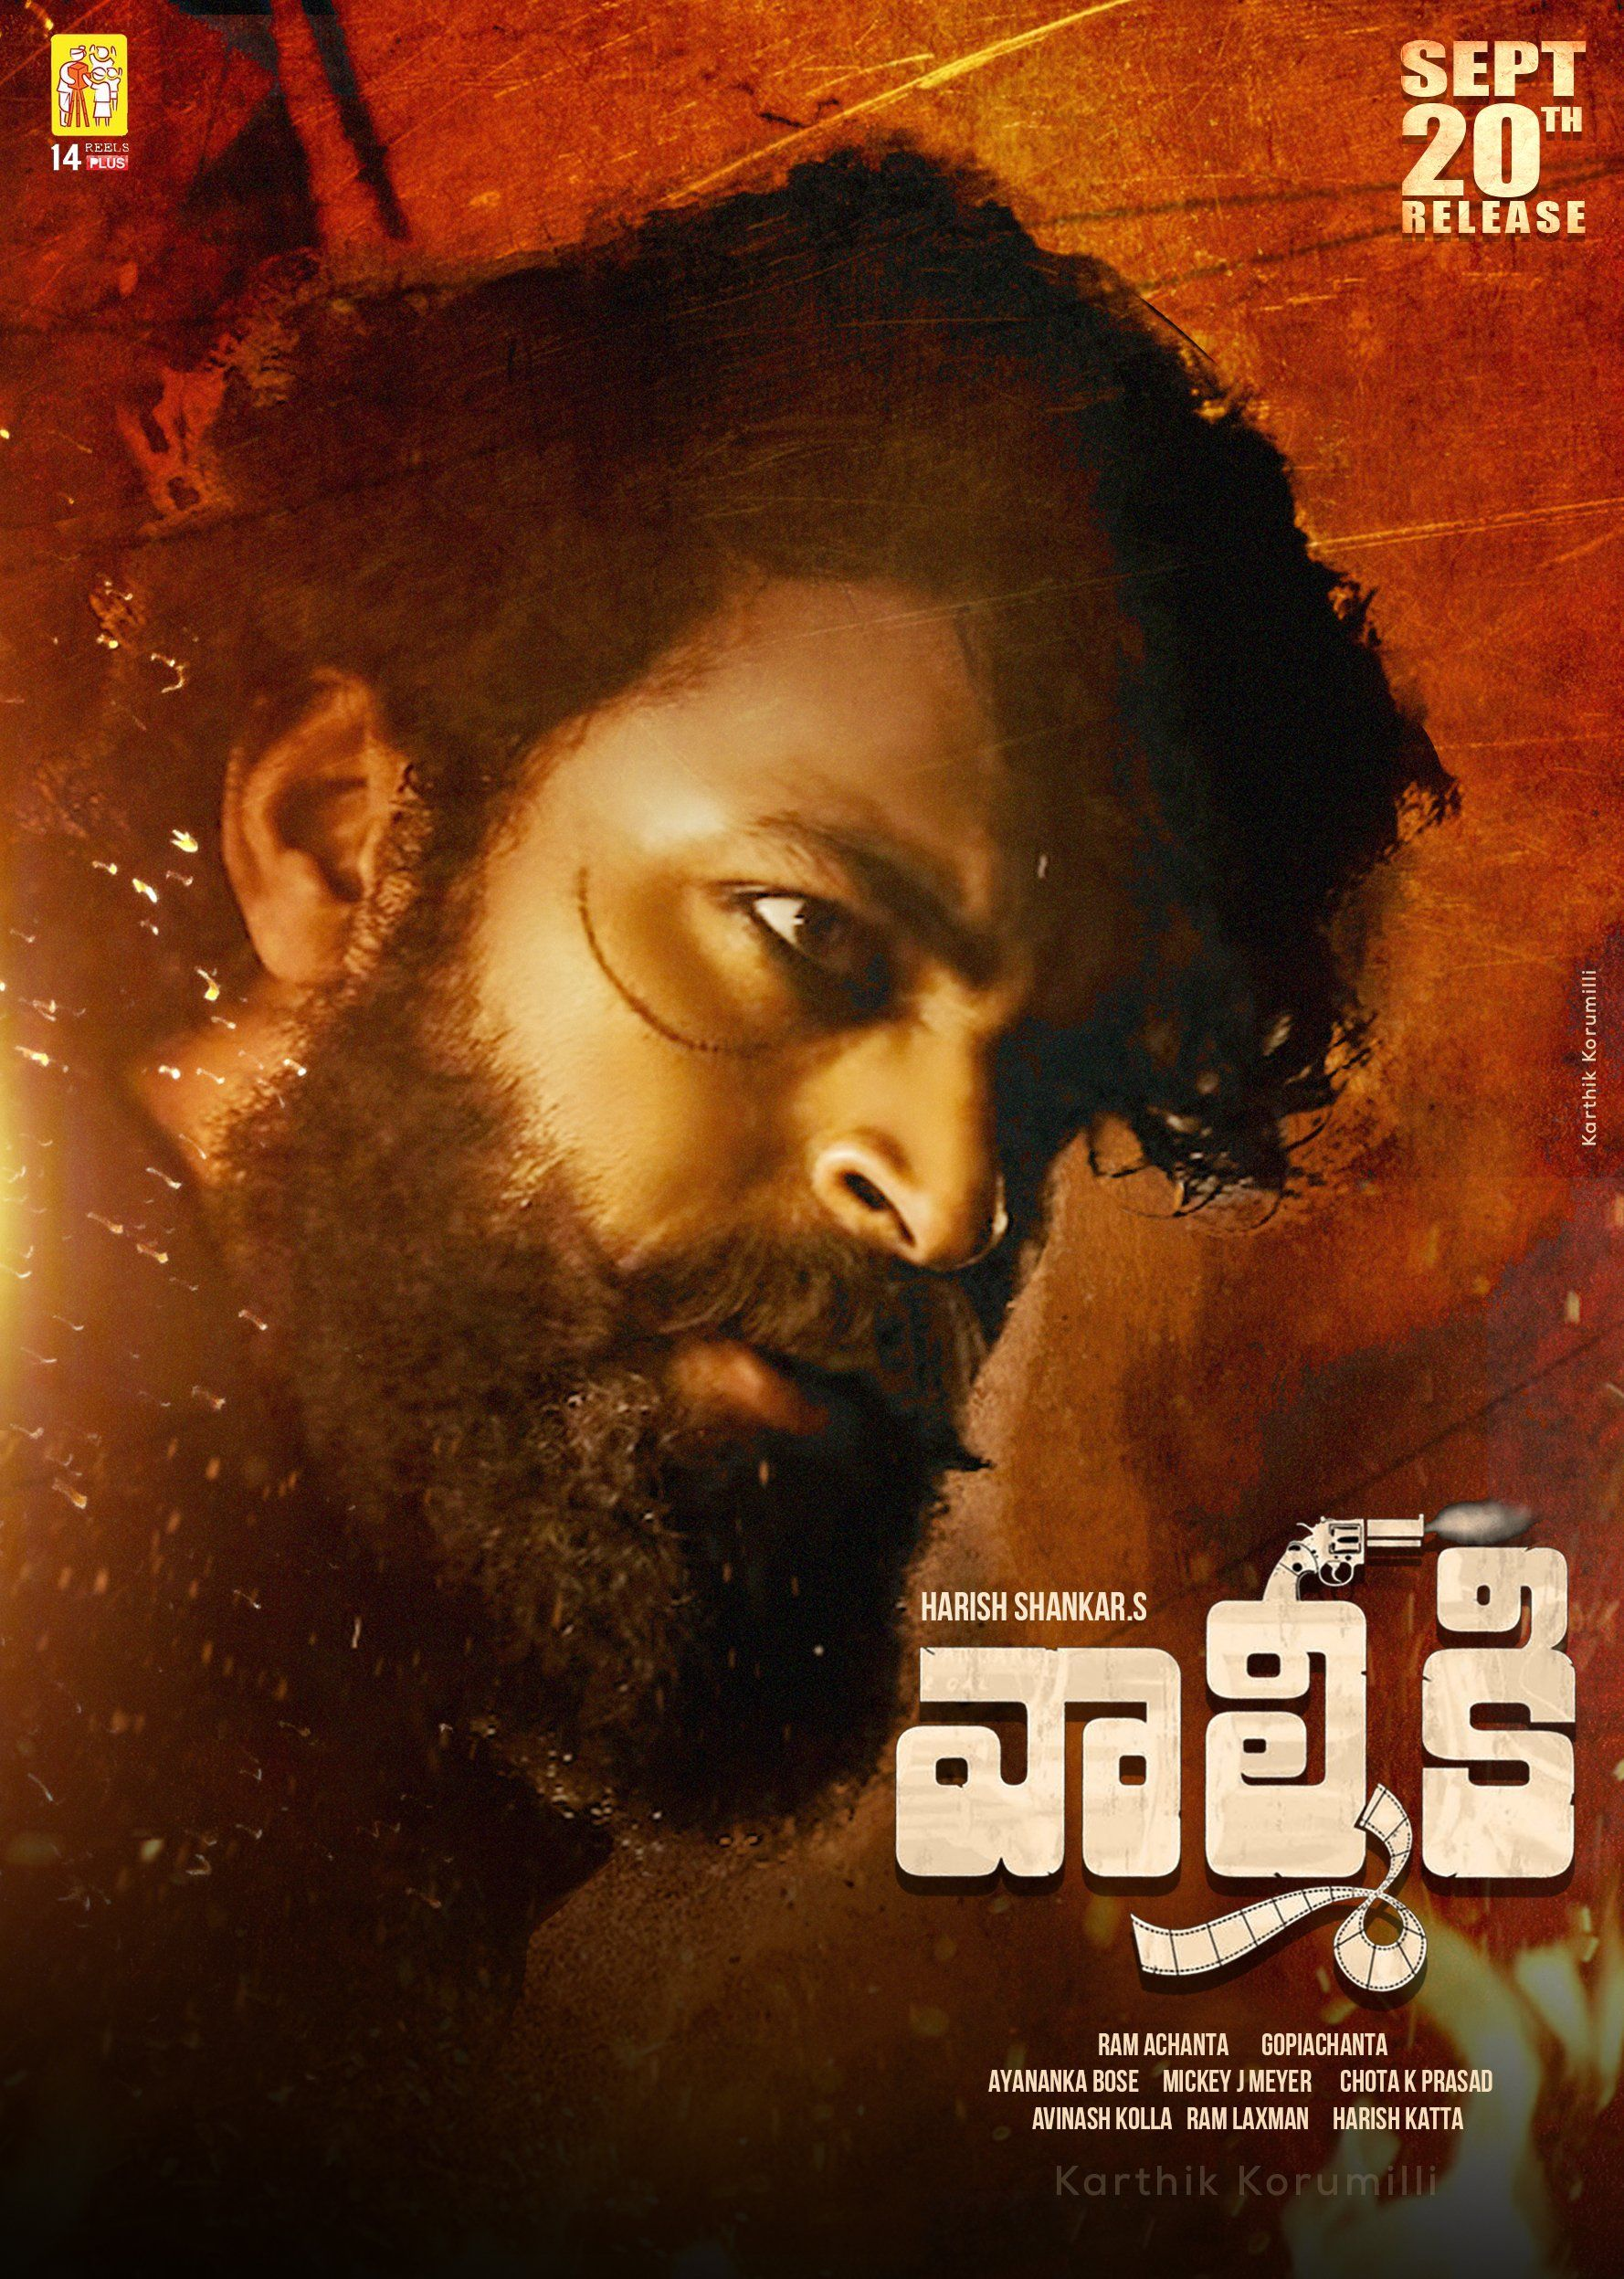 Valmiki Trailer Varun Tej S Deadly Gangster Avatar Steals The Show In 2020 Varun Tej Full Movies Online Free Movies To Watch Hindi